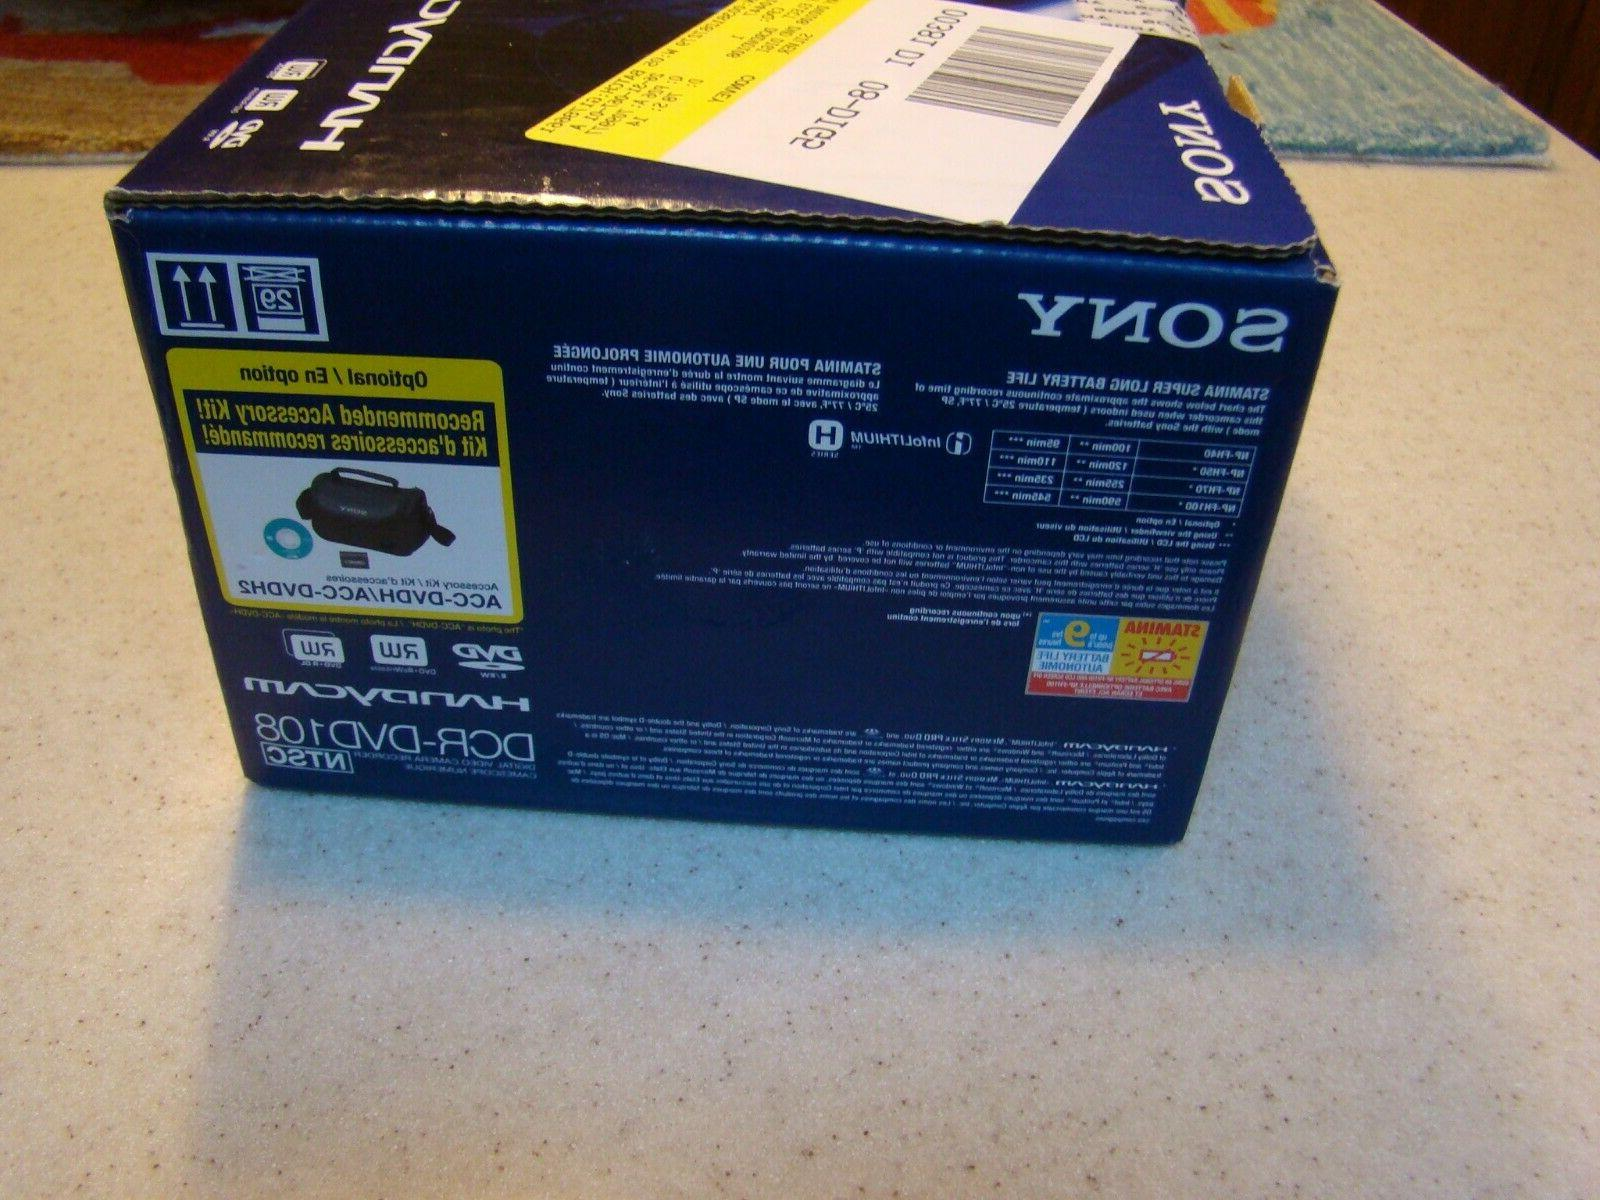 Sony Camcorder 40x Zoom. BOX